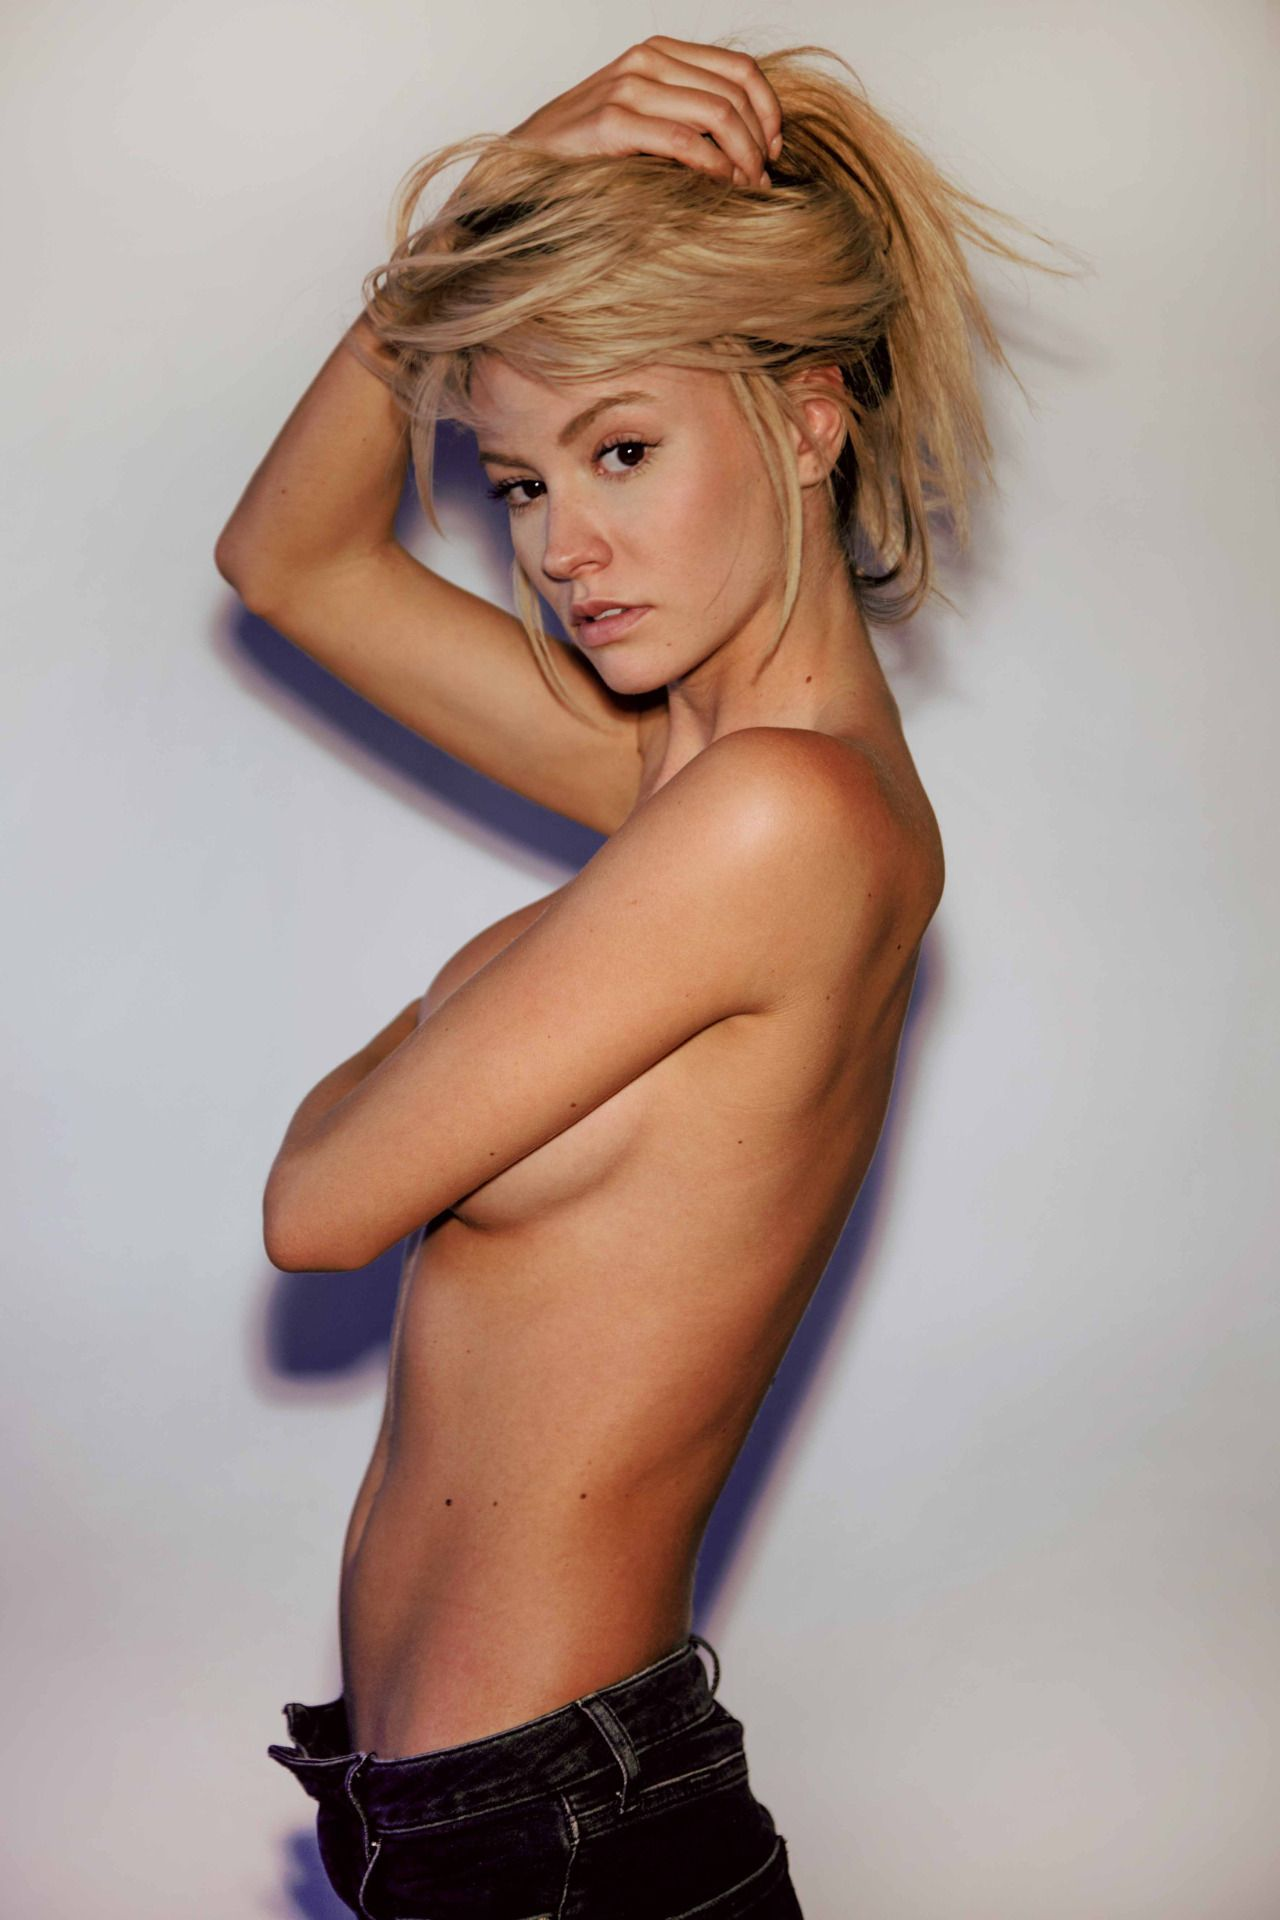 Bryana Holly Topless Phot...